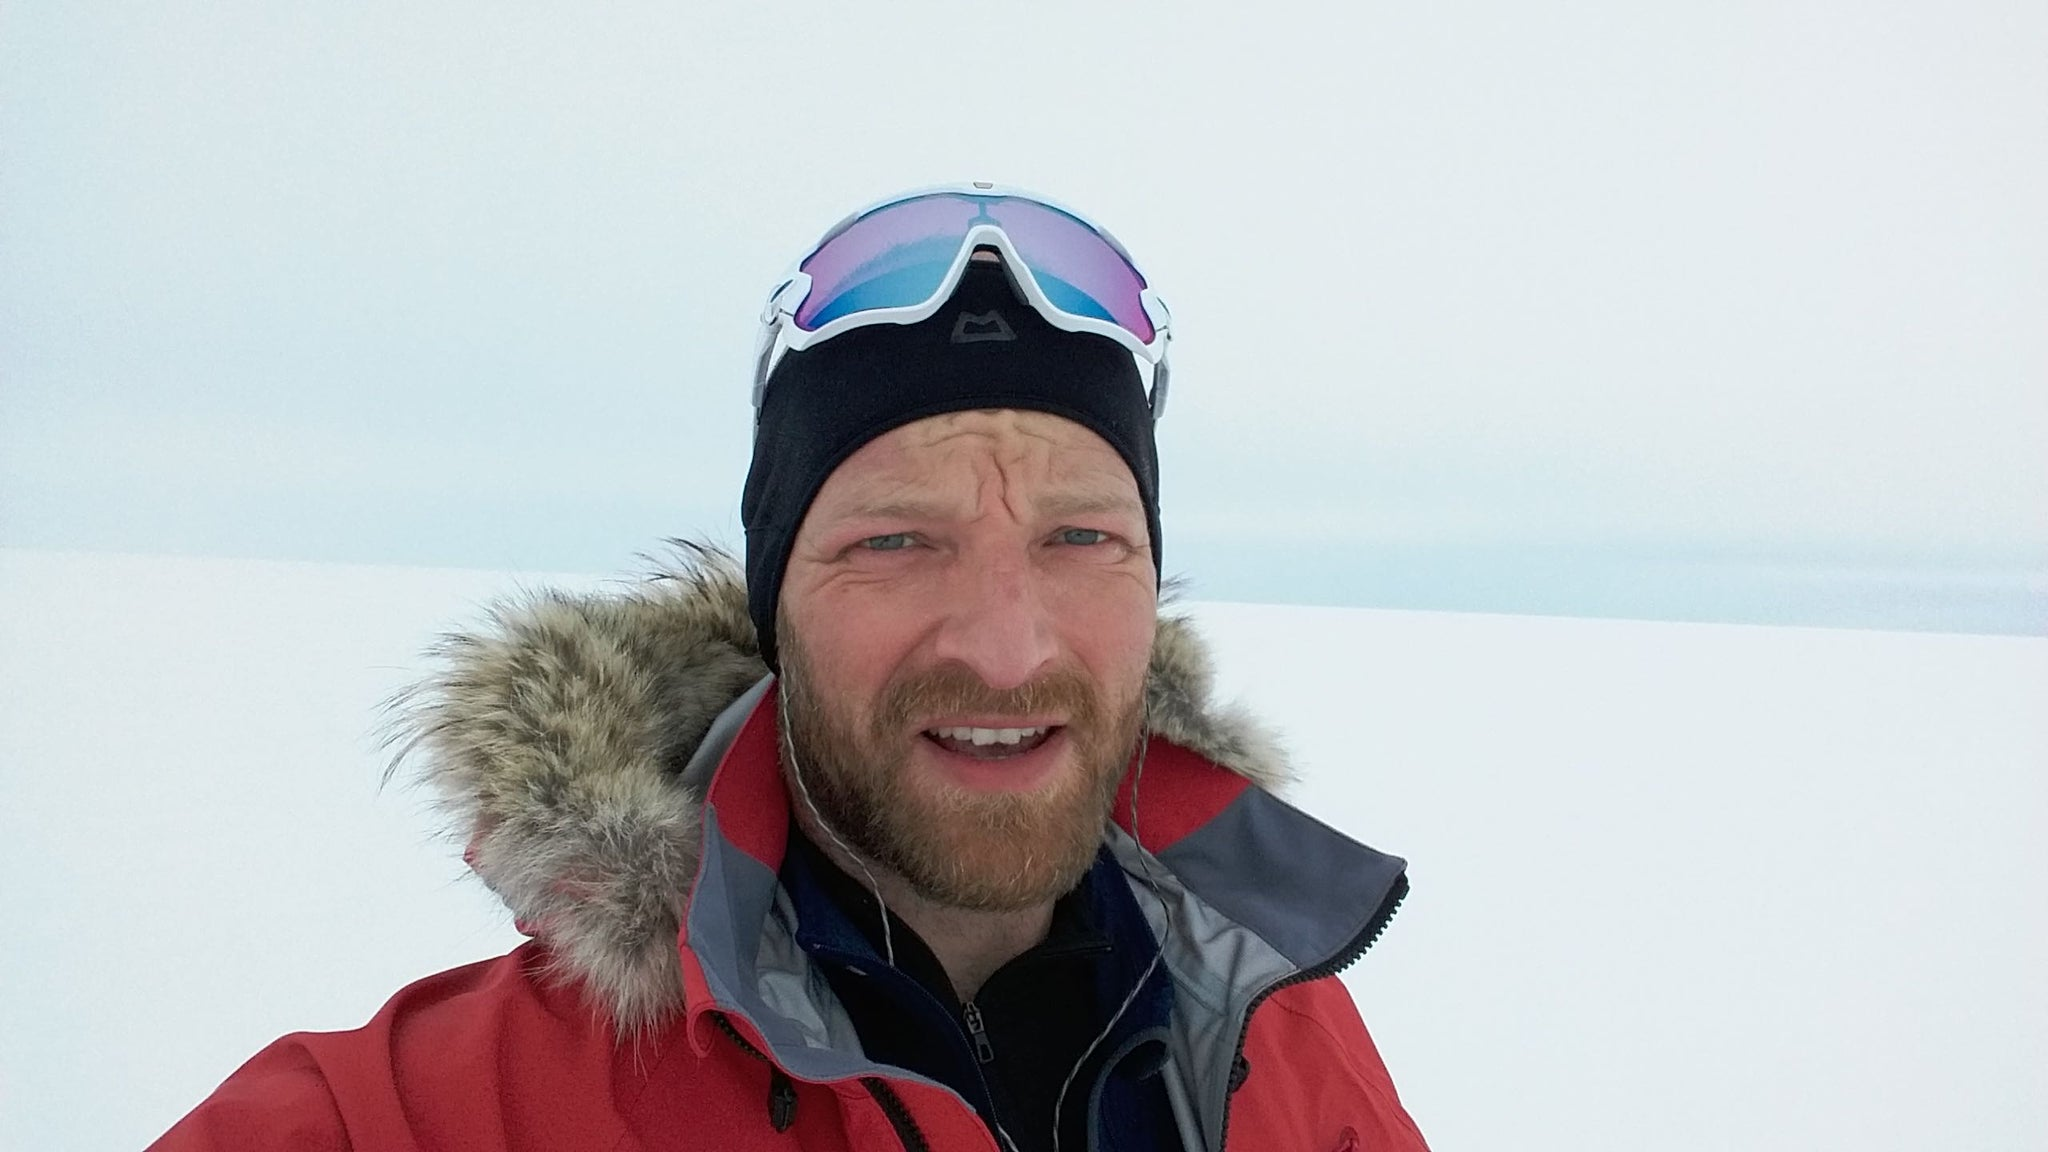 Polar explorer Ben Saunders explains why he takes FLARES® PRO earphones on his expeditions.